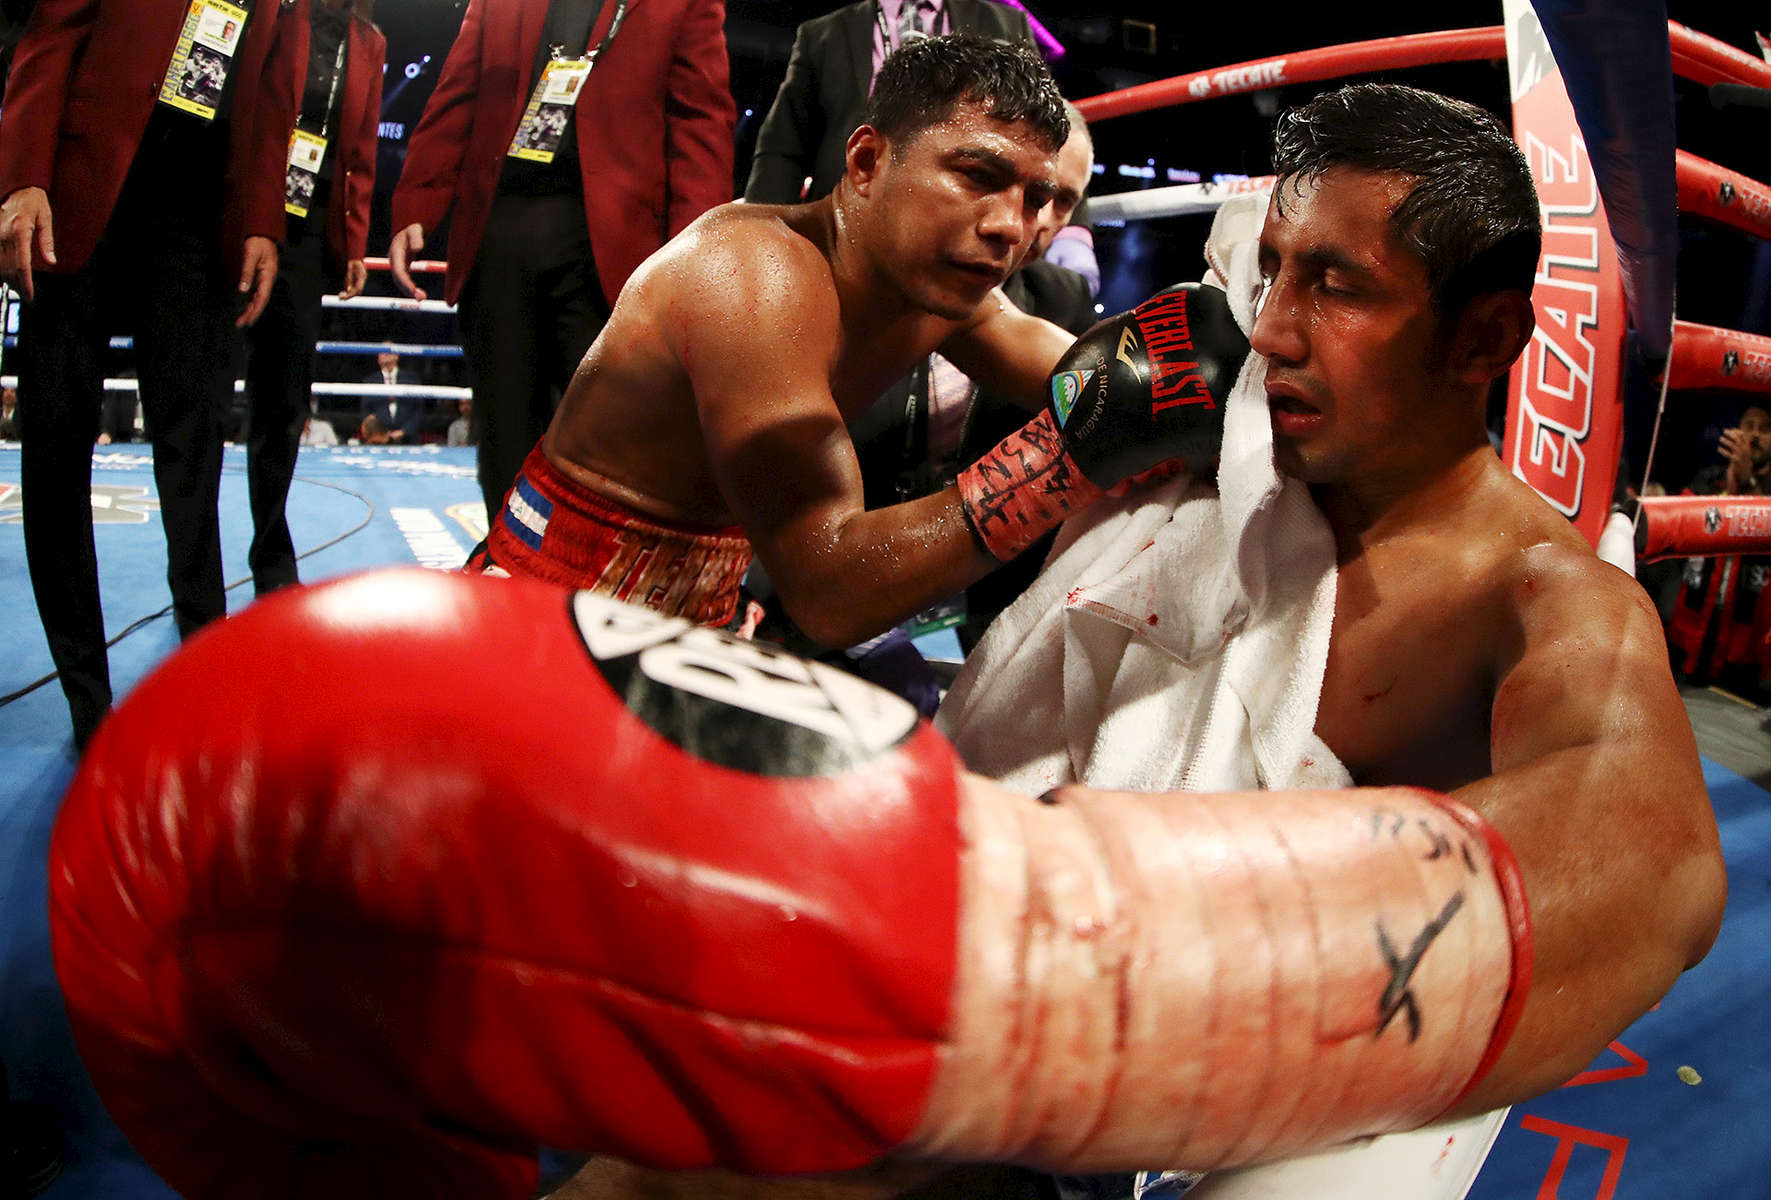 Roman Gonzalez consoles Moises Fuentes after knocking him out in the first round during their super flyweight bout at T-Mobile Arena on September 15, 2018 in Las Vegas, Nevada.